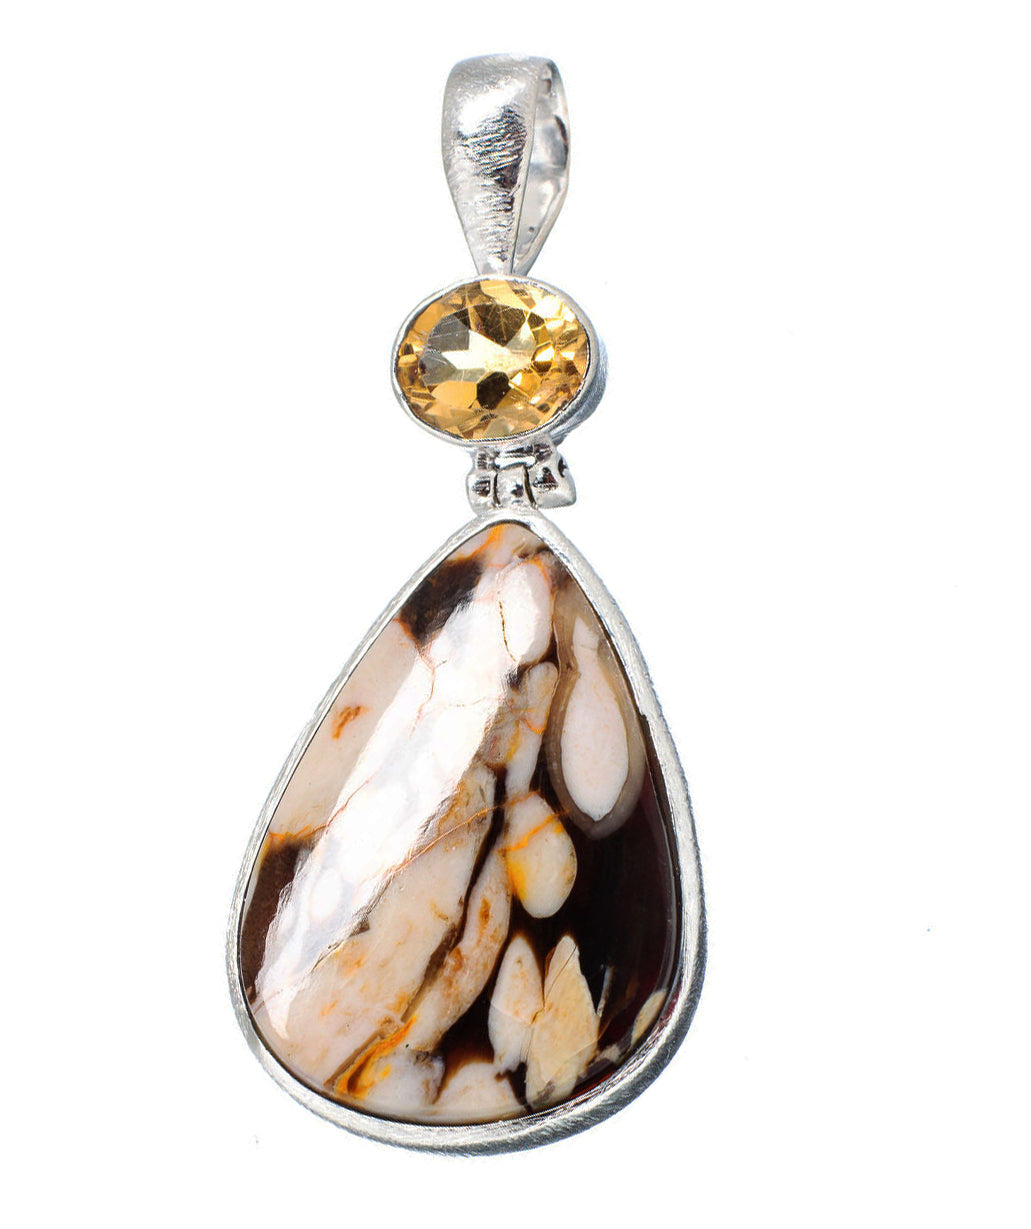 Peanut Wood Jasper Pendant with Faceted Citrine